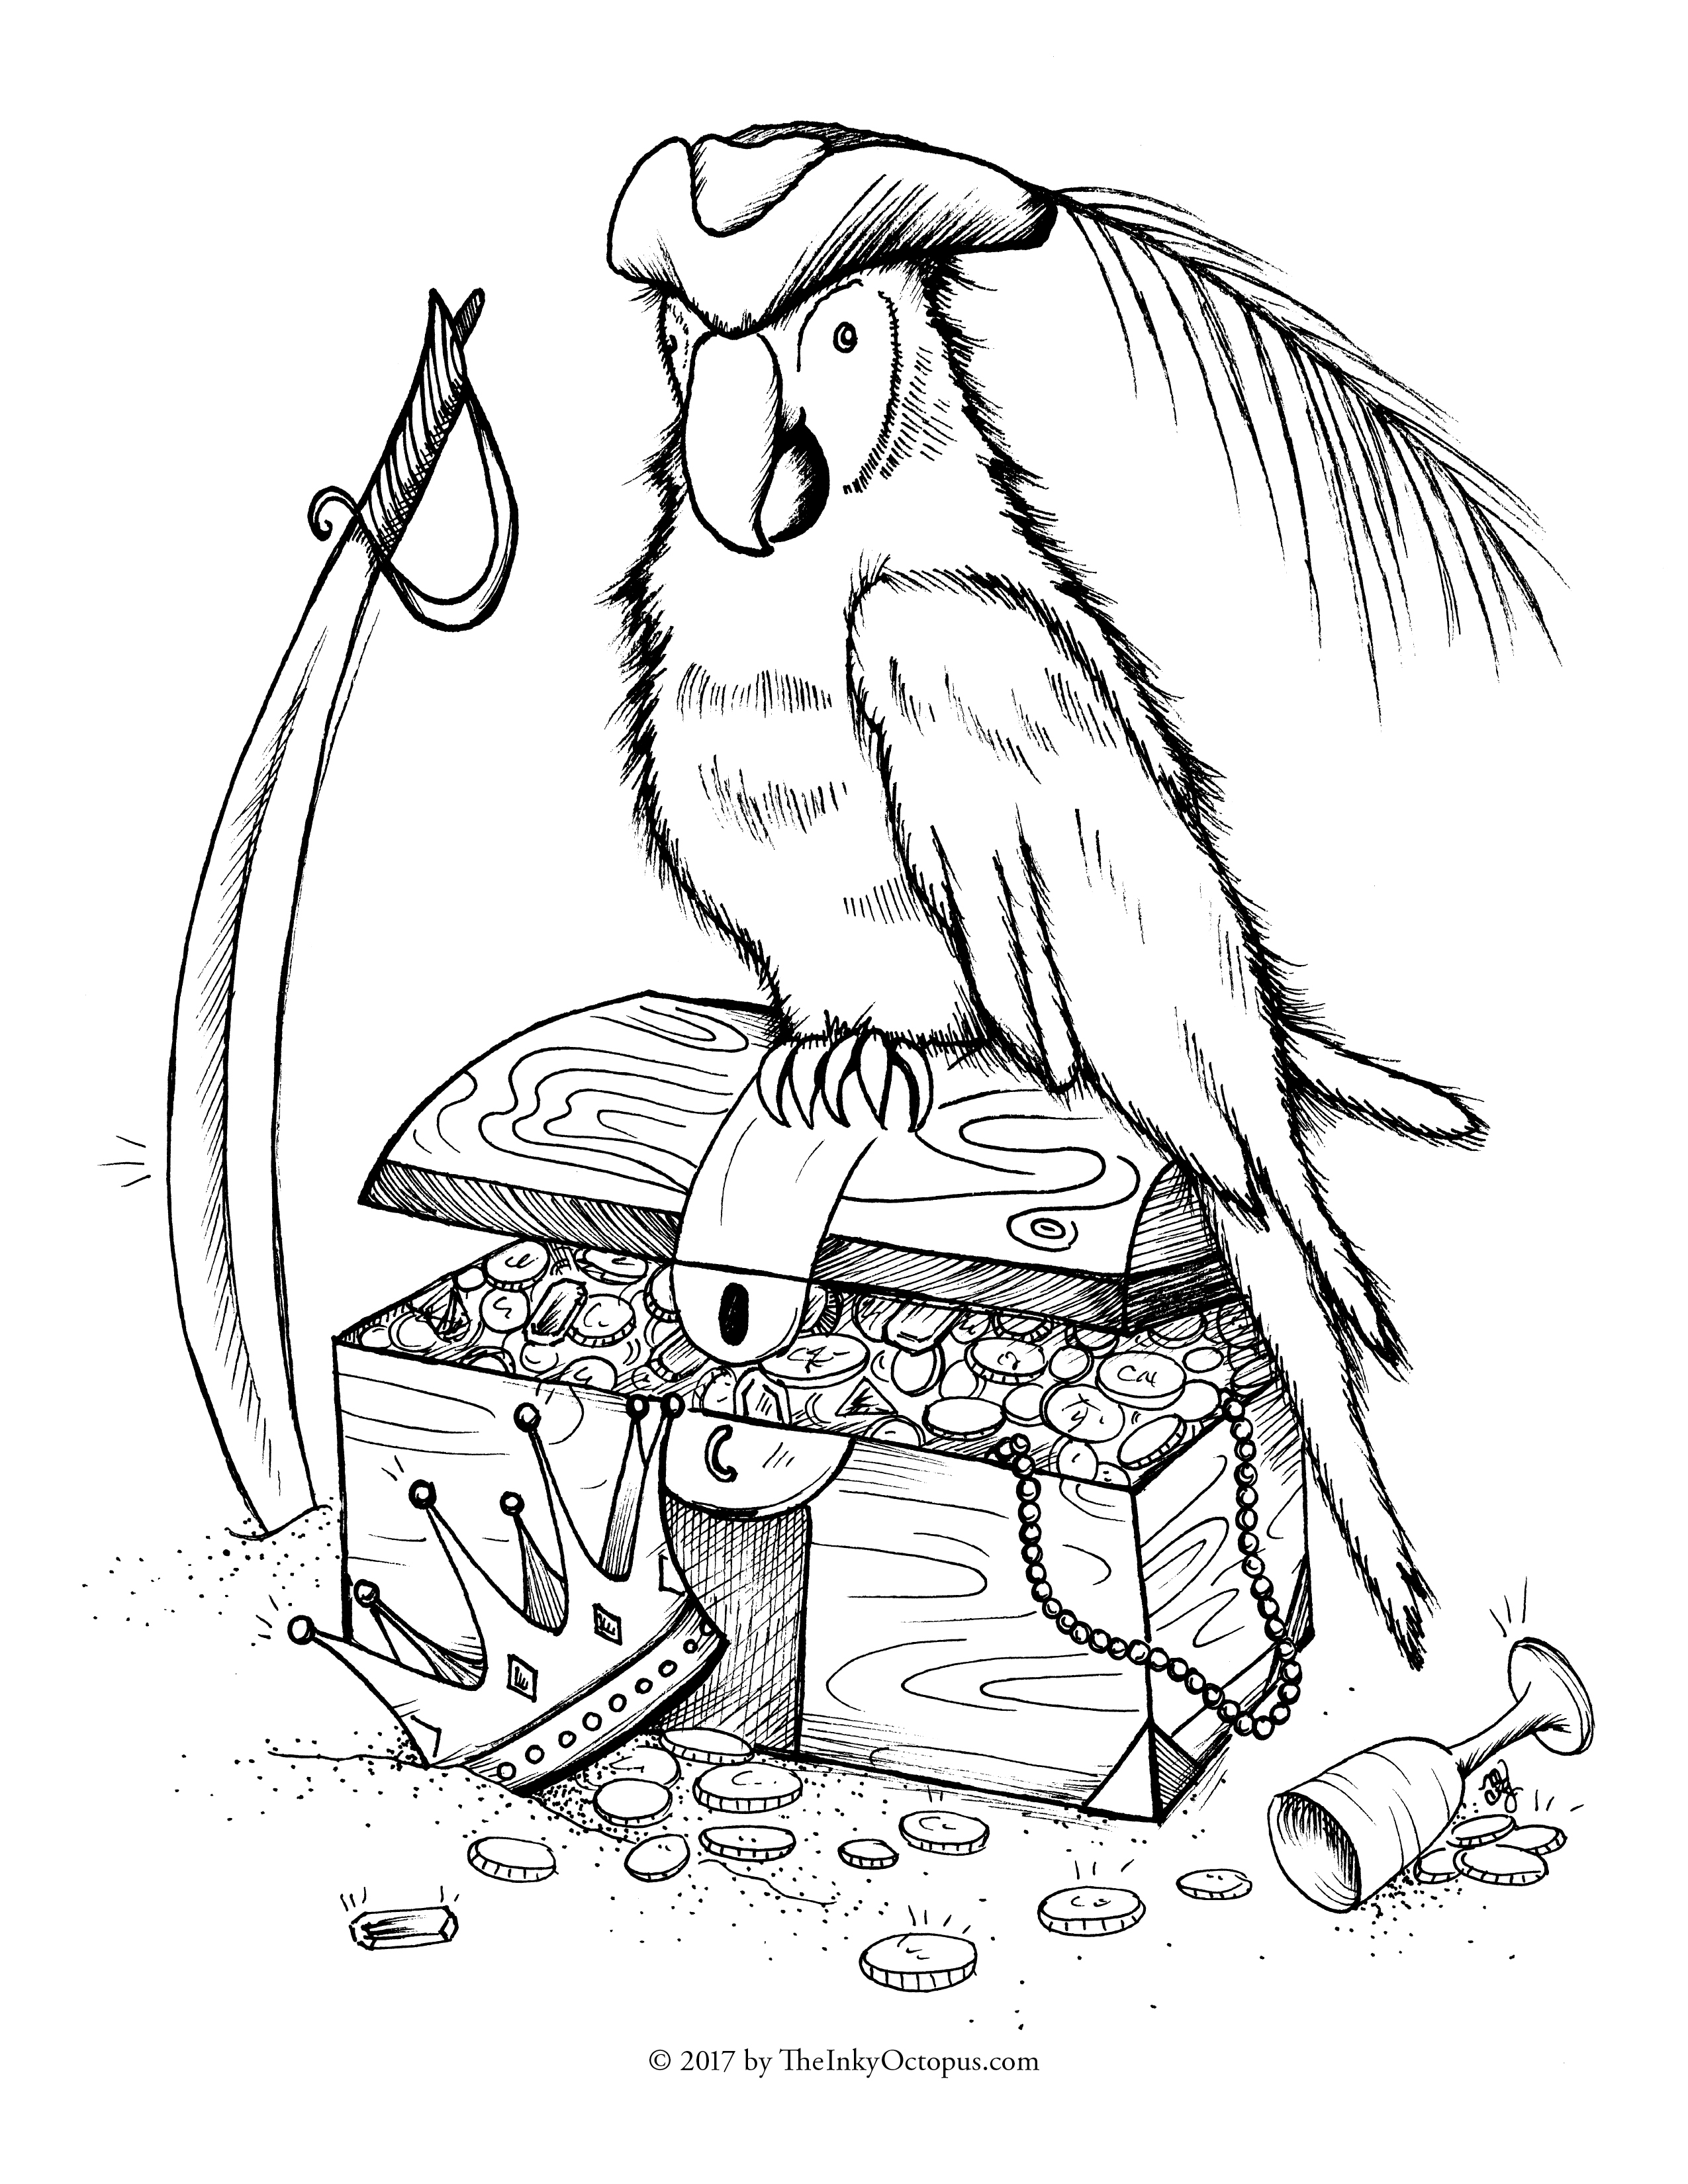 Pirate parrot drawing at free for for Pirate hat coloring page